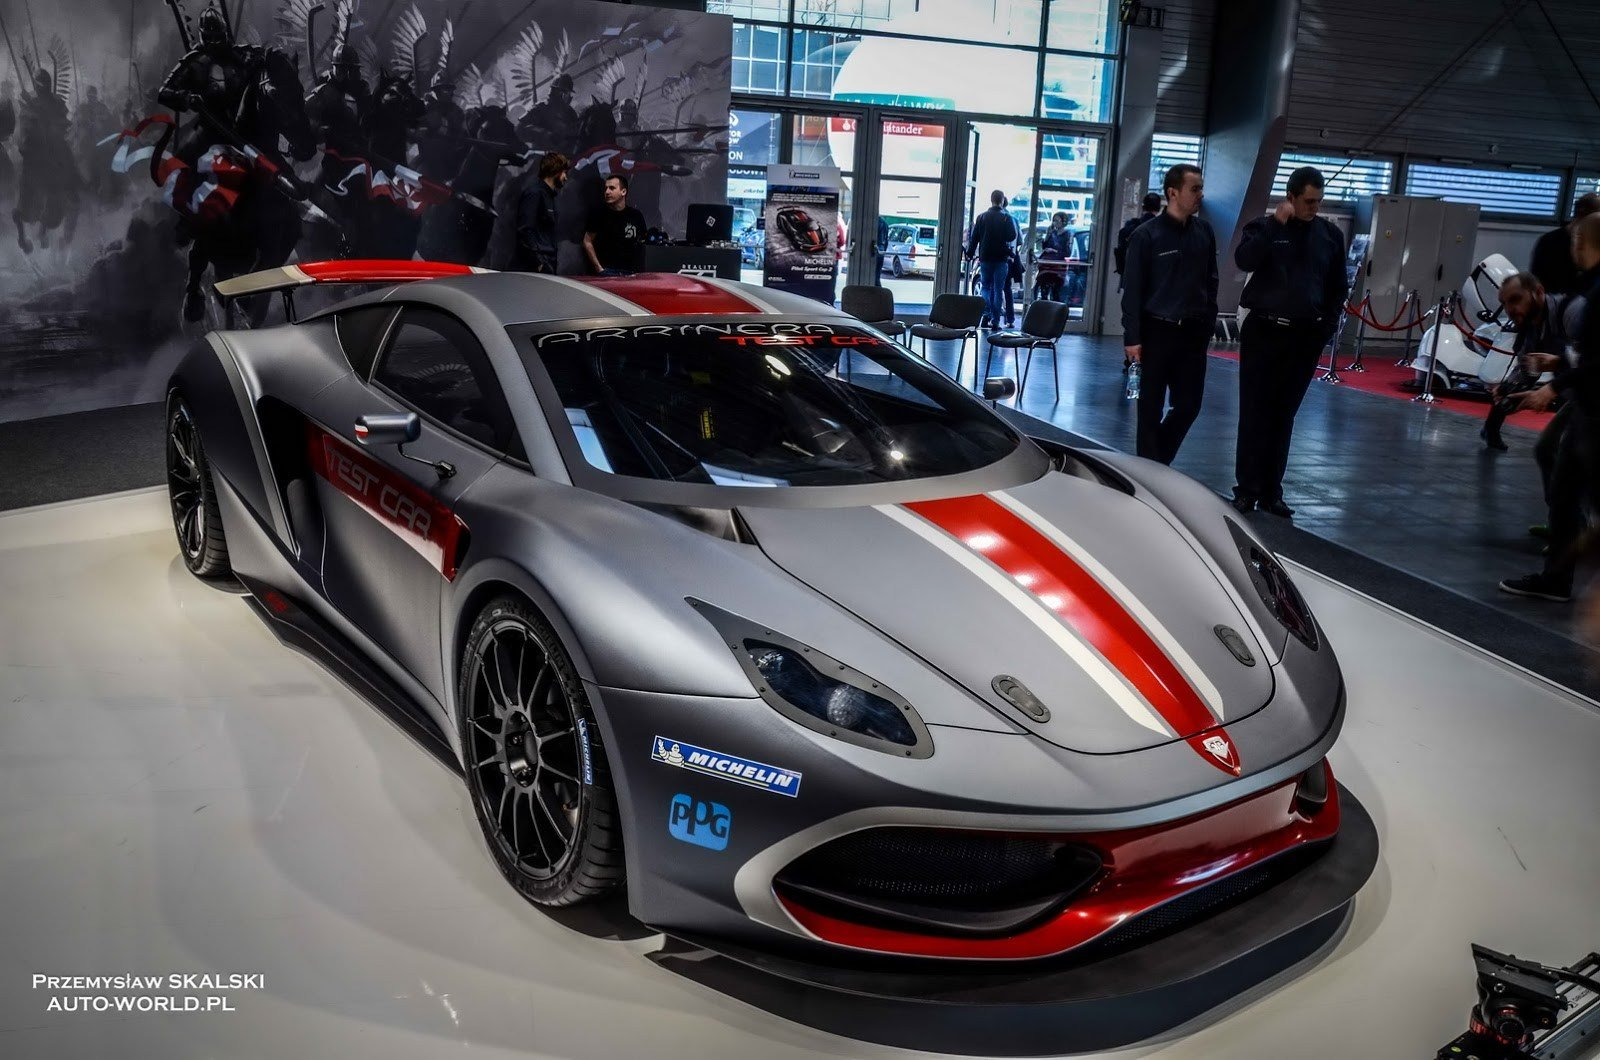 New Meet Arrinera Hussayra Poland's First Supercar On This Month